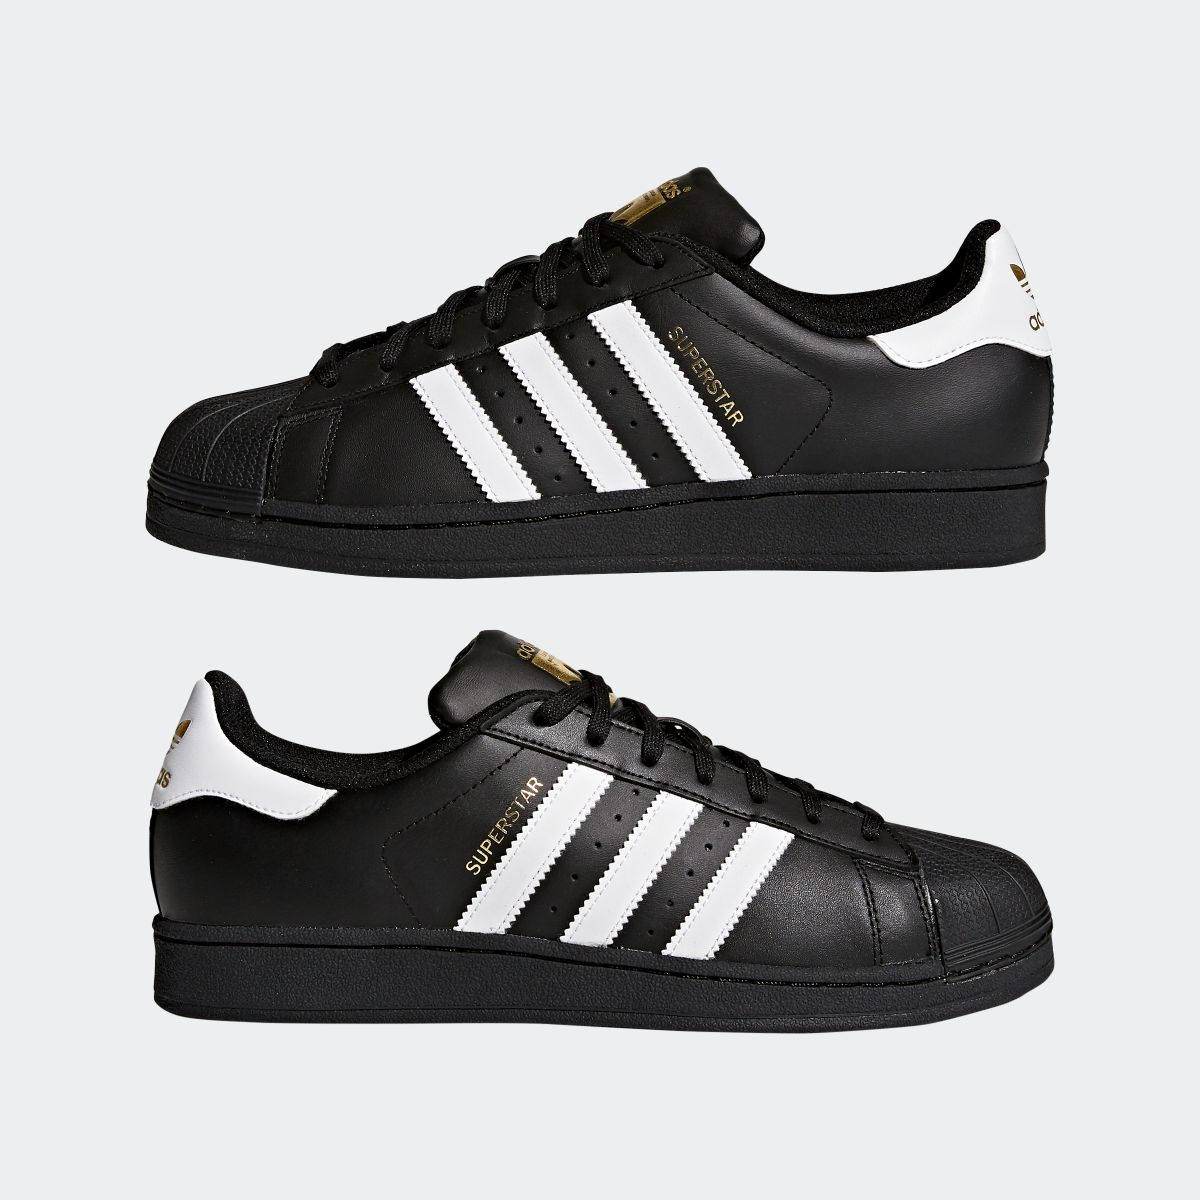 reputable site 74316 bfffc Adidas adidas superstar foundation / SUPERSTAR FOUNDATION Lady's men  originals shoes sneakers B27140